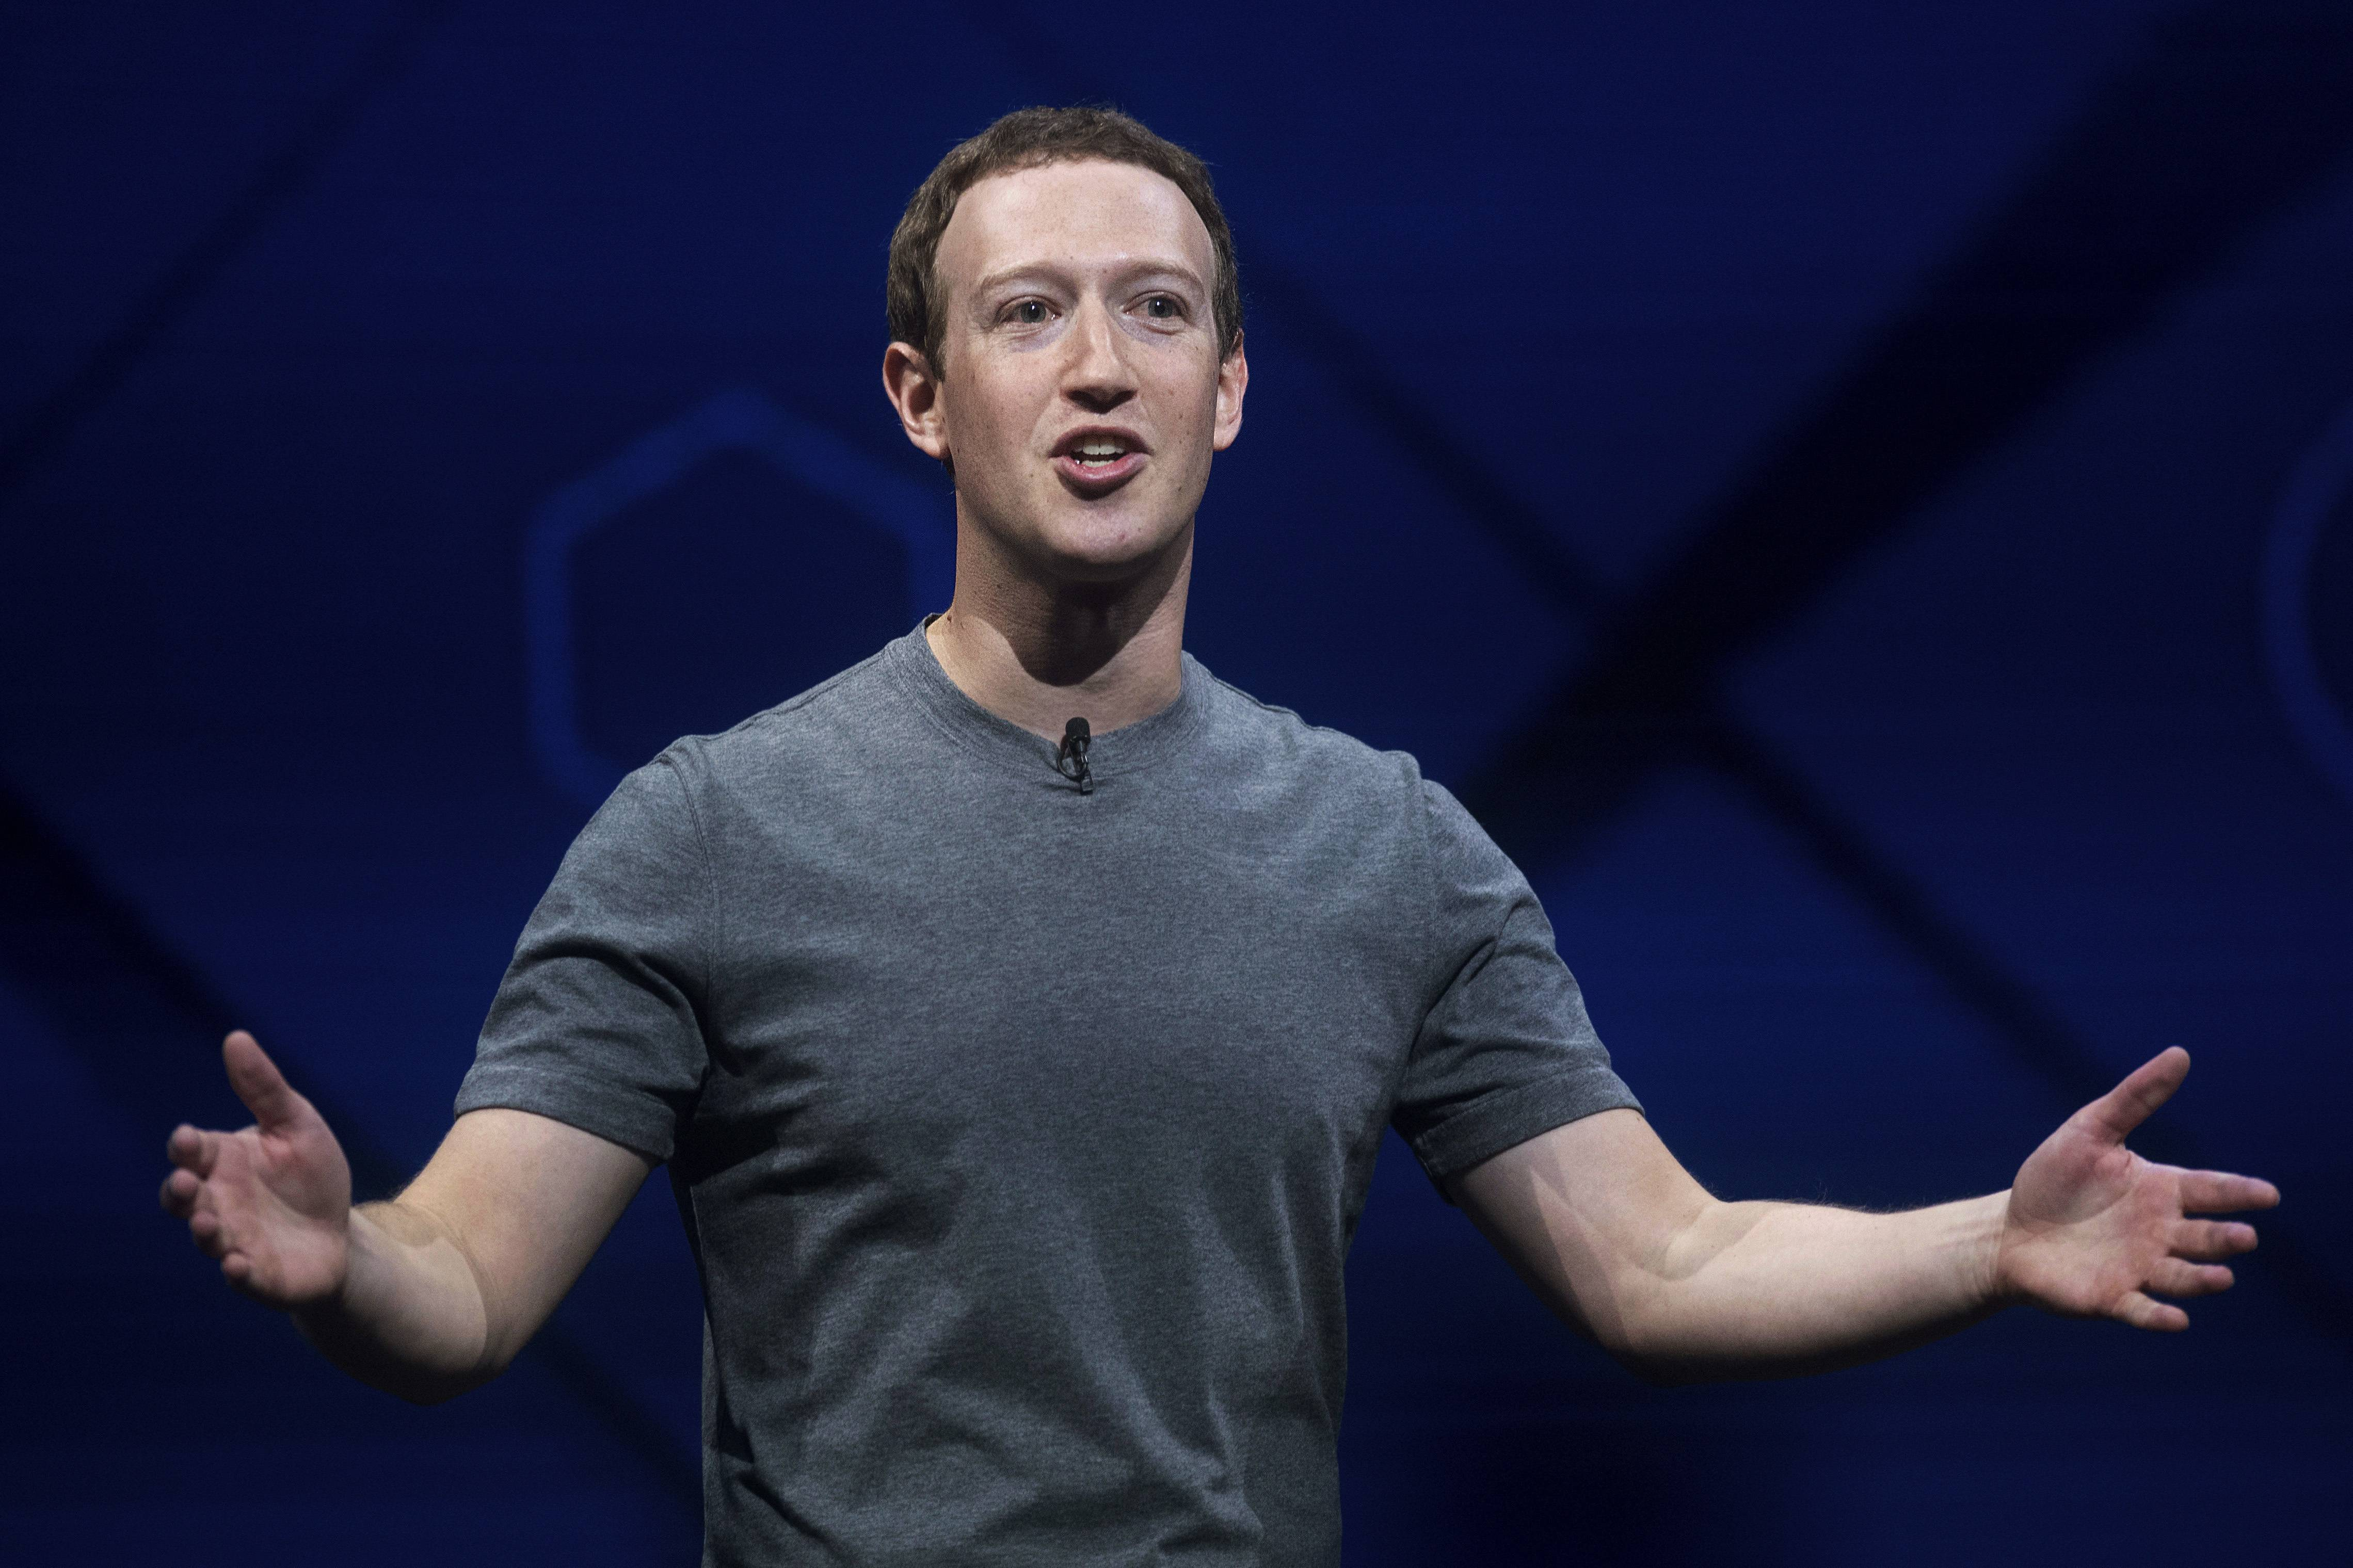 Facebook CEO Mark Zuckerberg disclosed late Thursday a drastic change to how Facebook determines what people see when they surf the social network.